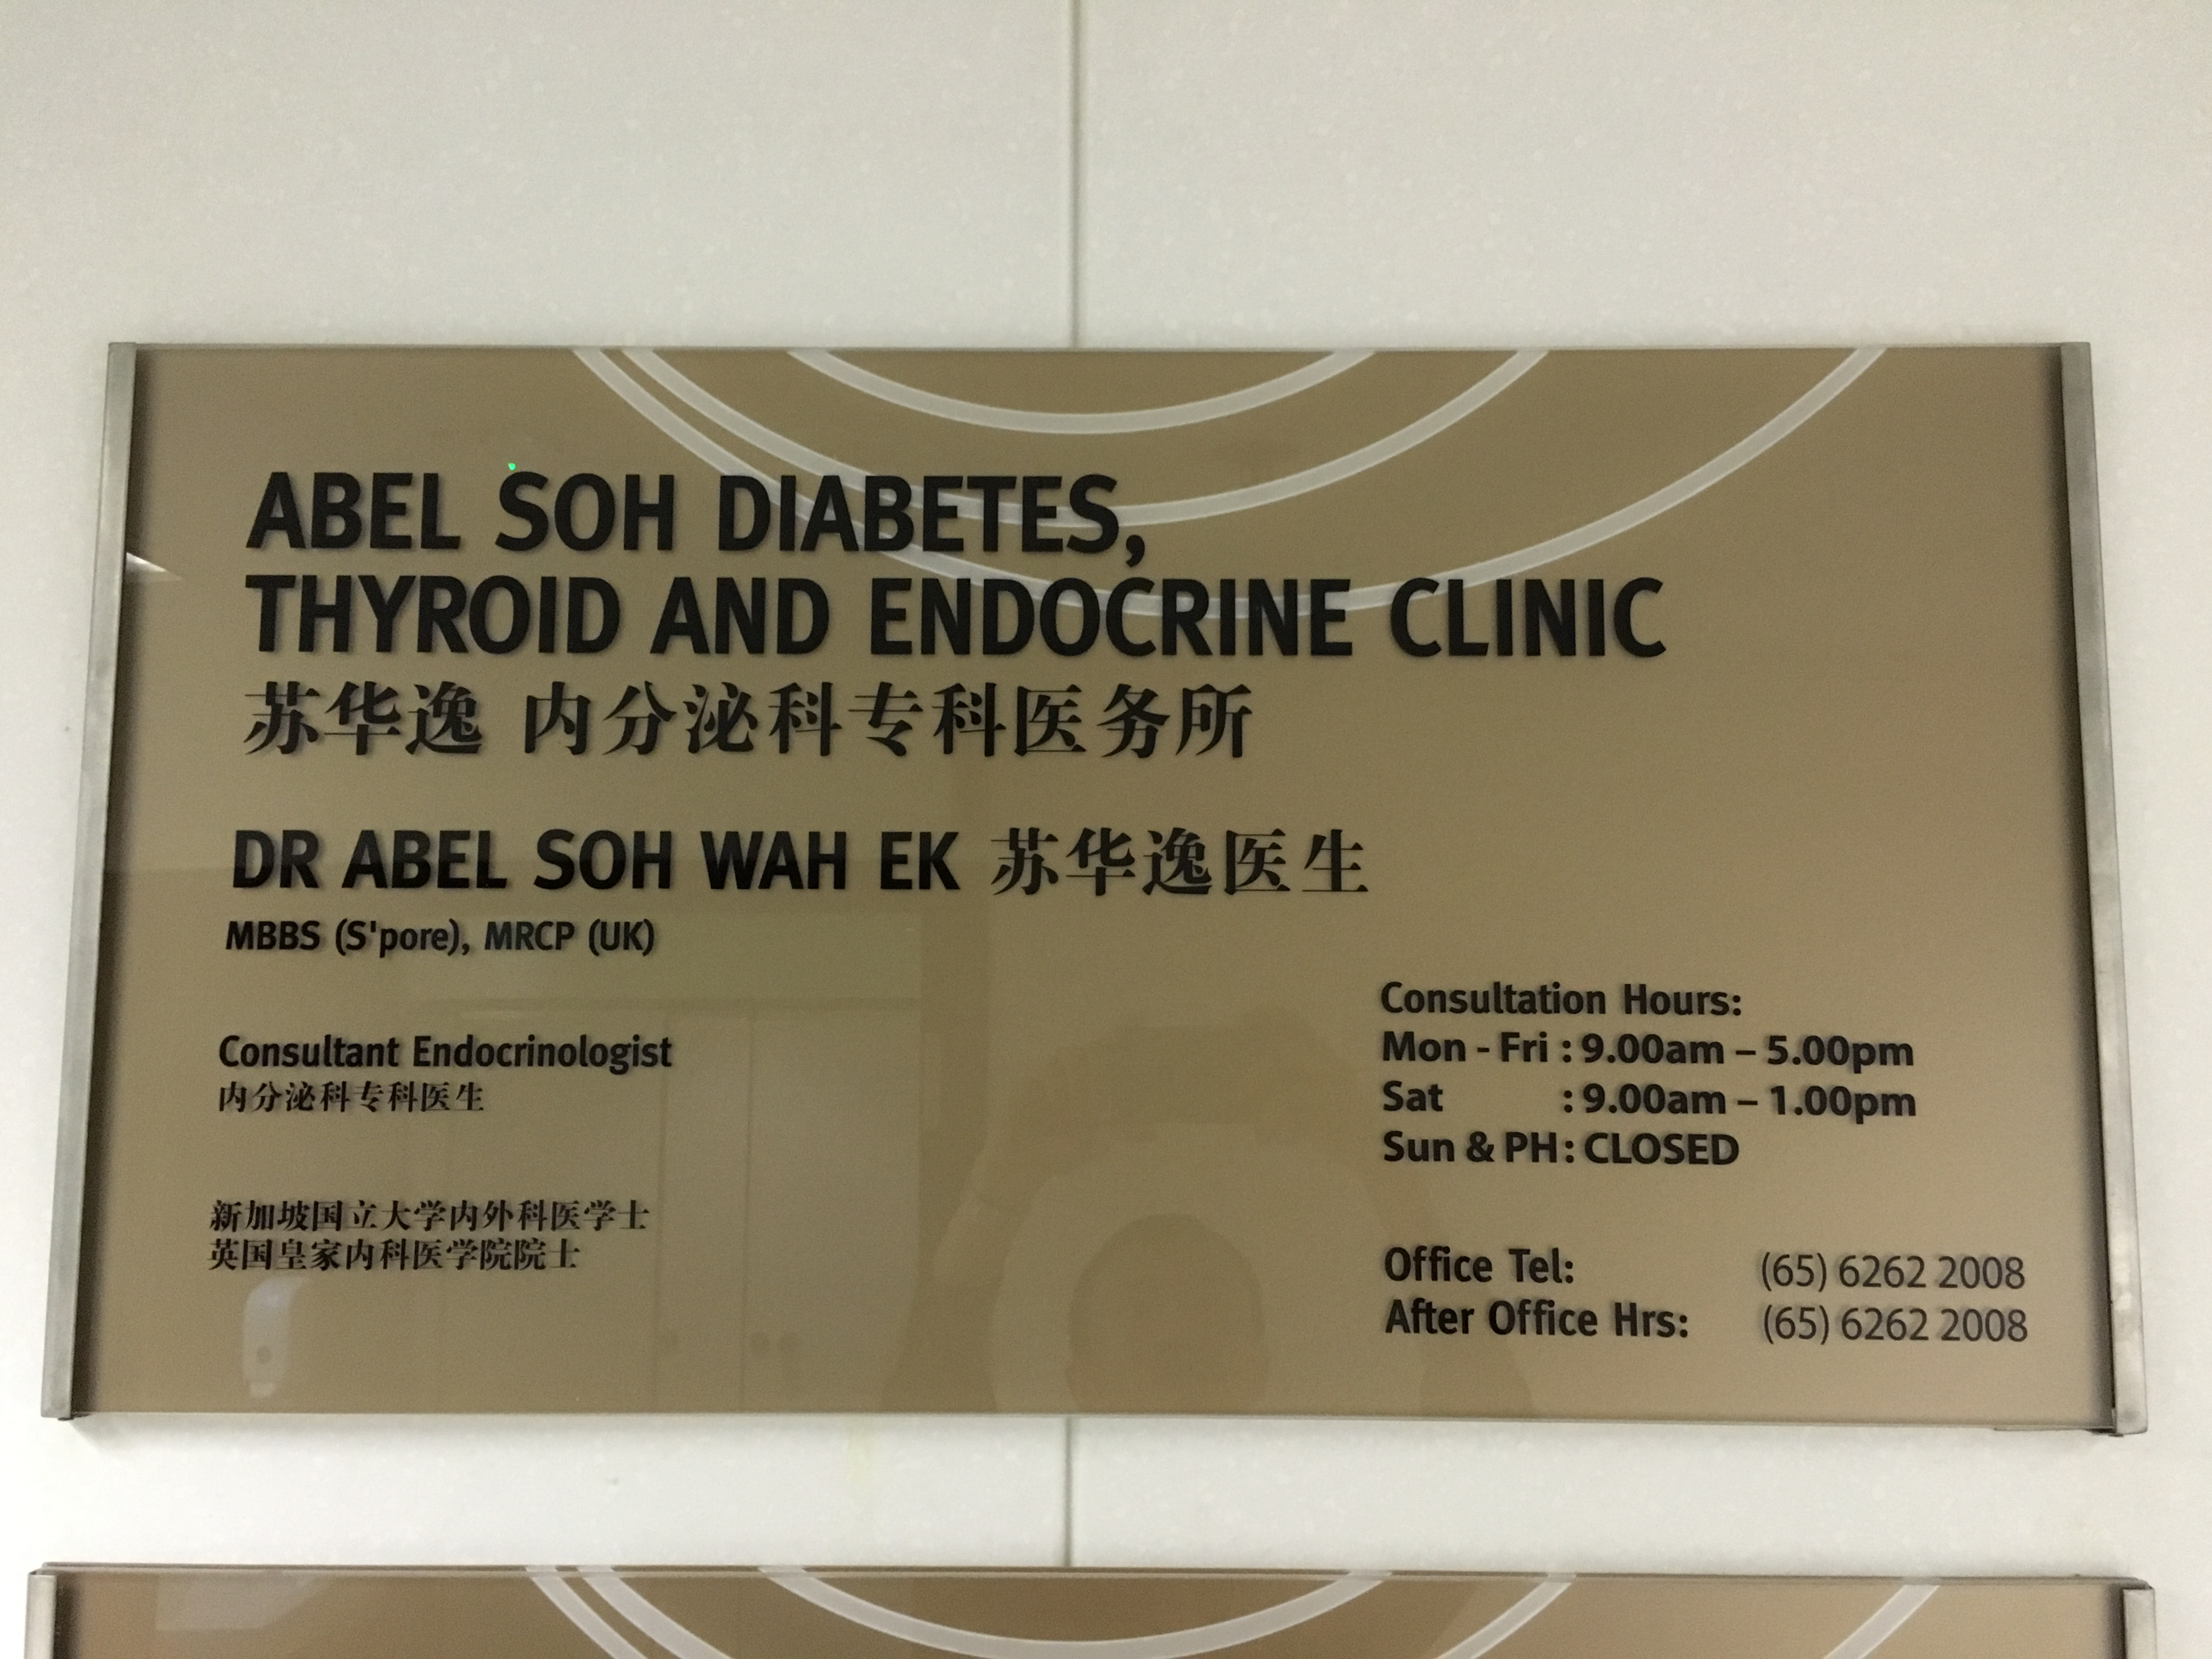 Abel Soh Diabetes, Thyroid and Endocrine Clinic